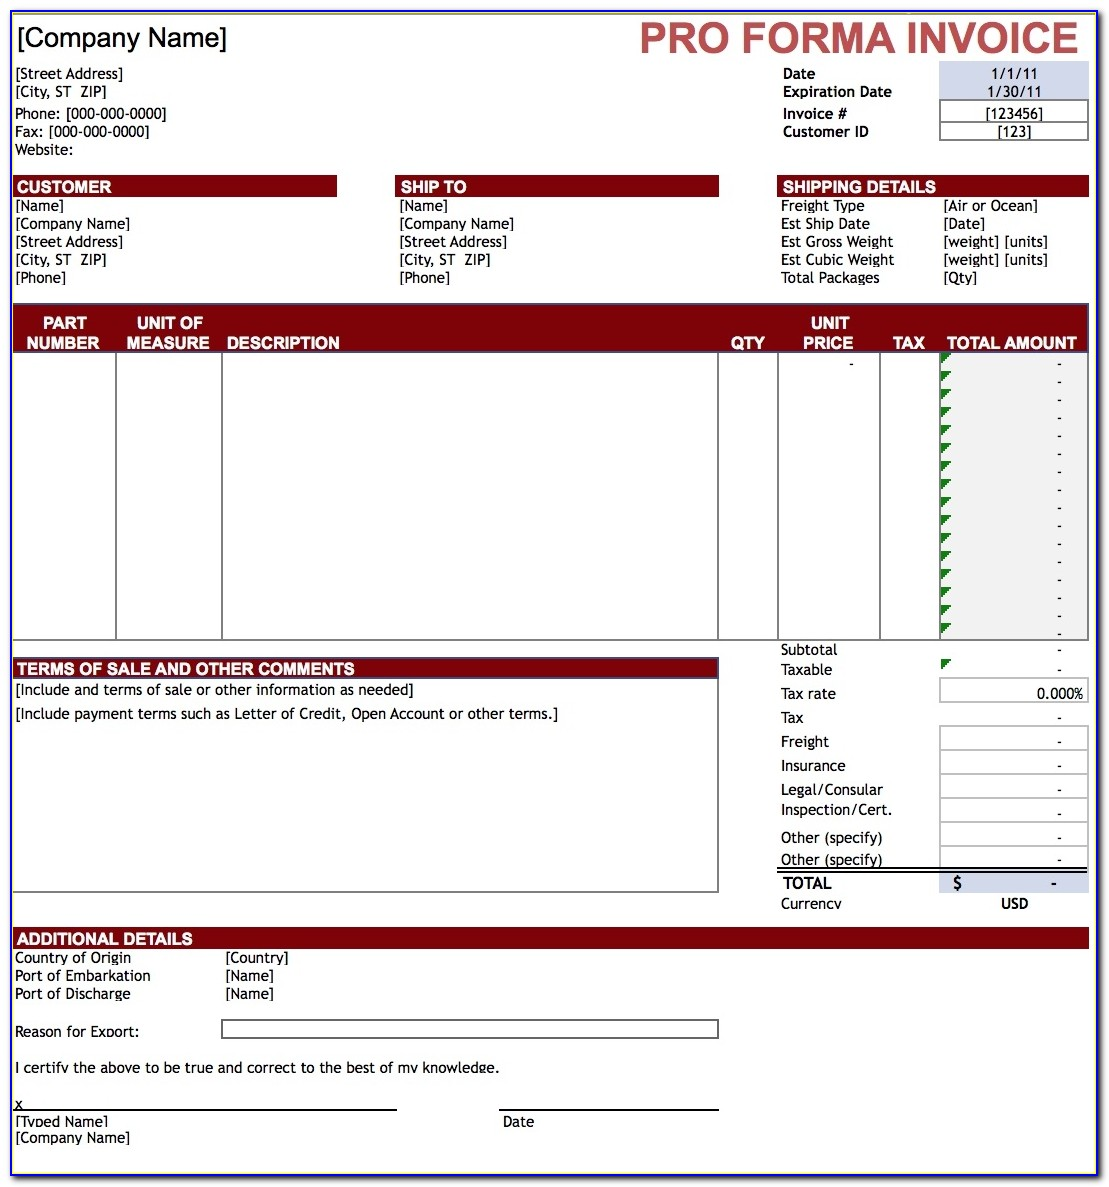 Free Pro Forma Invoice Template Excel Pdf Word Doc Performance Invoice Sample